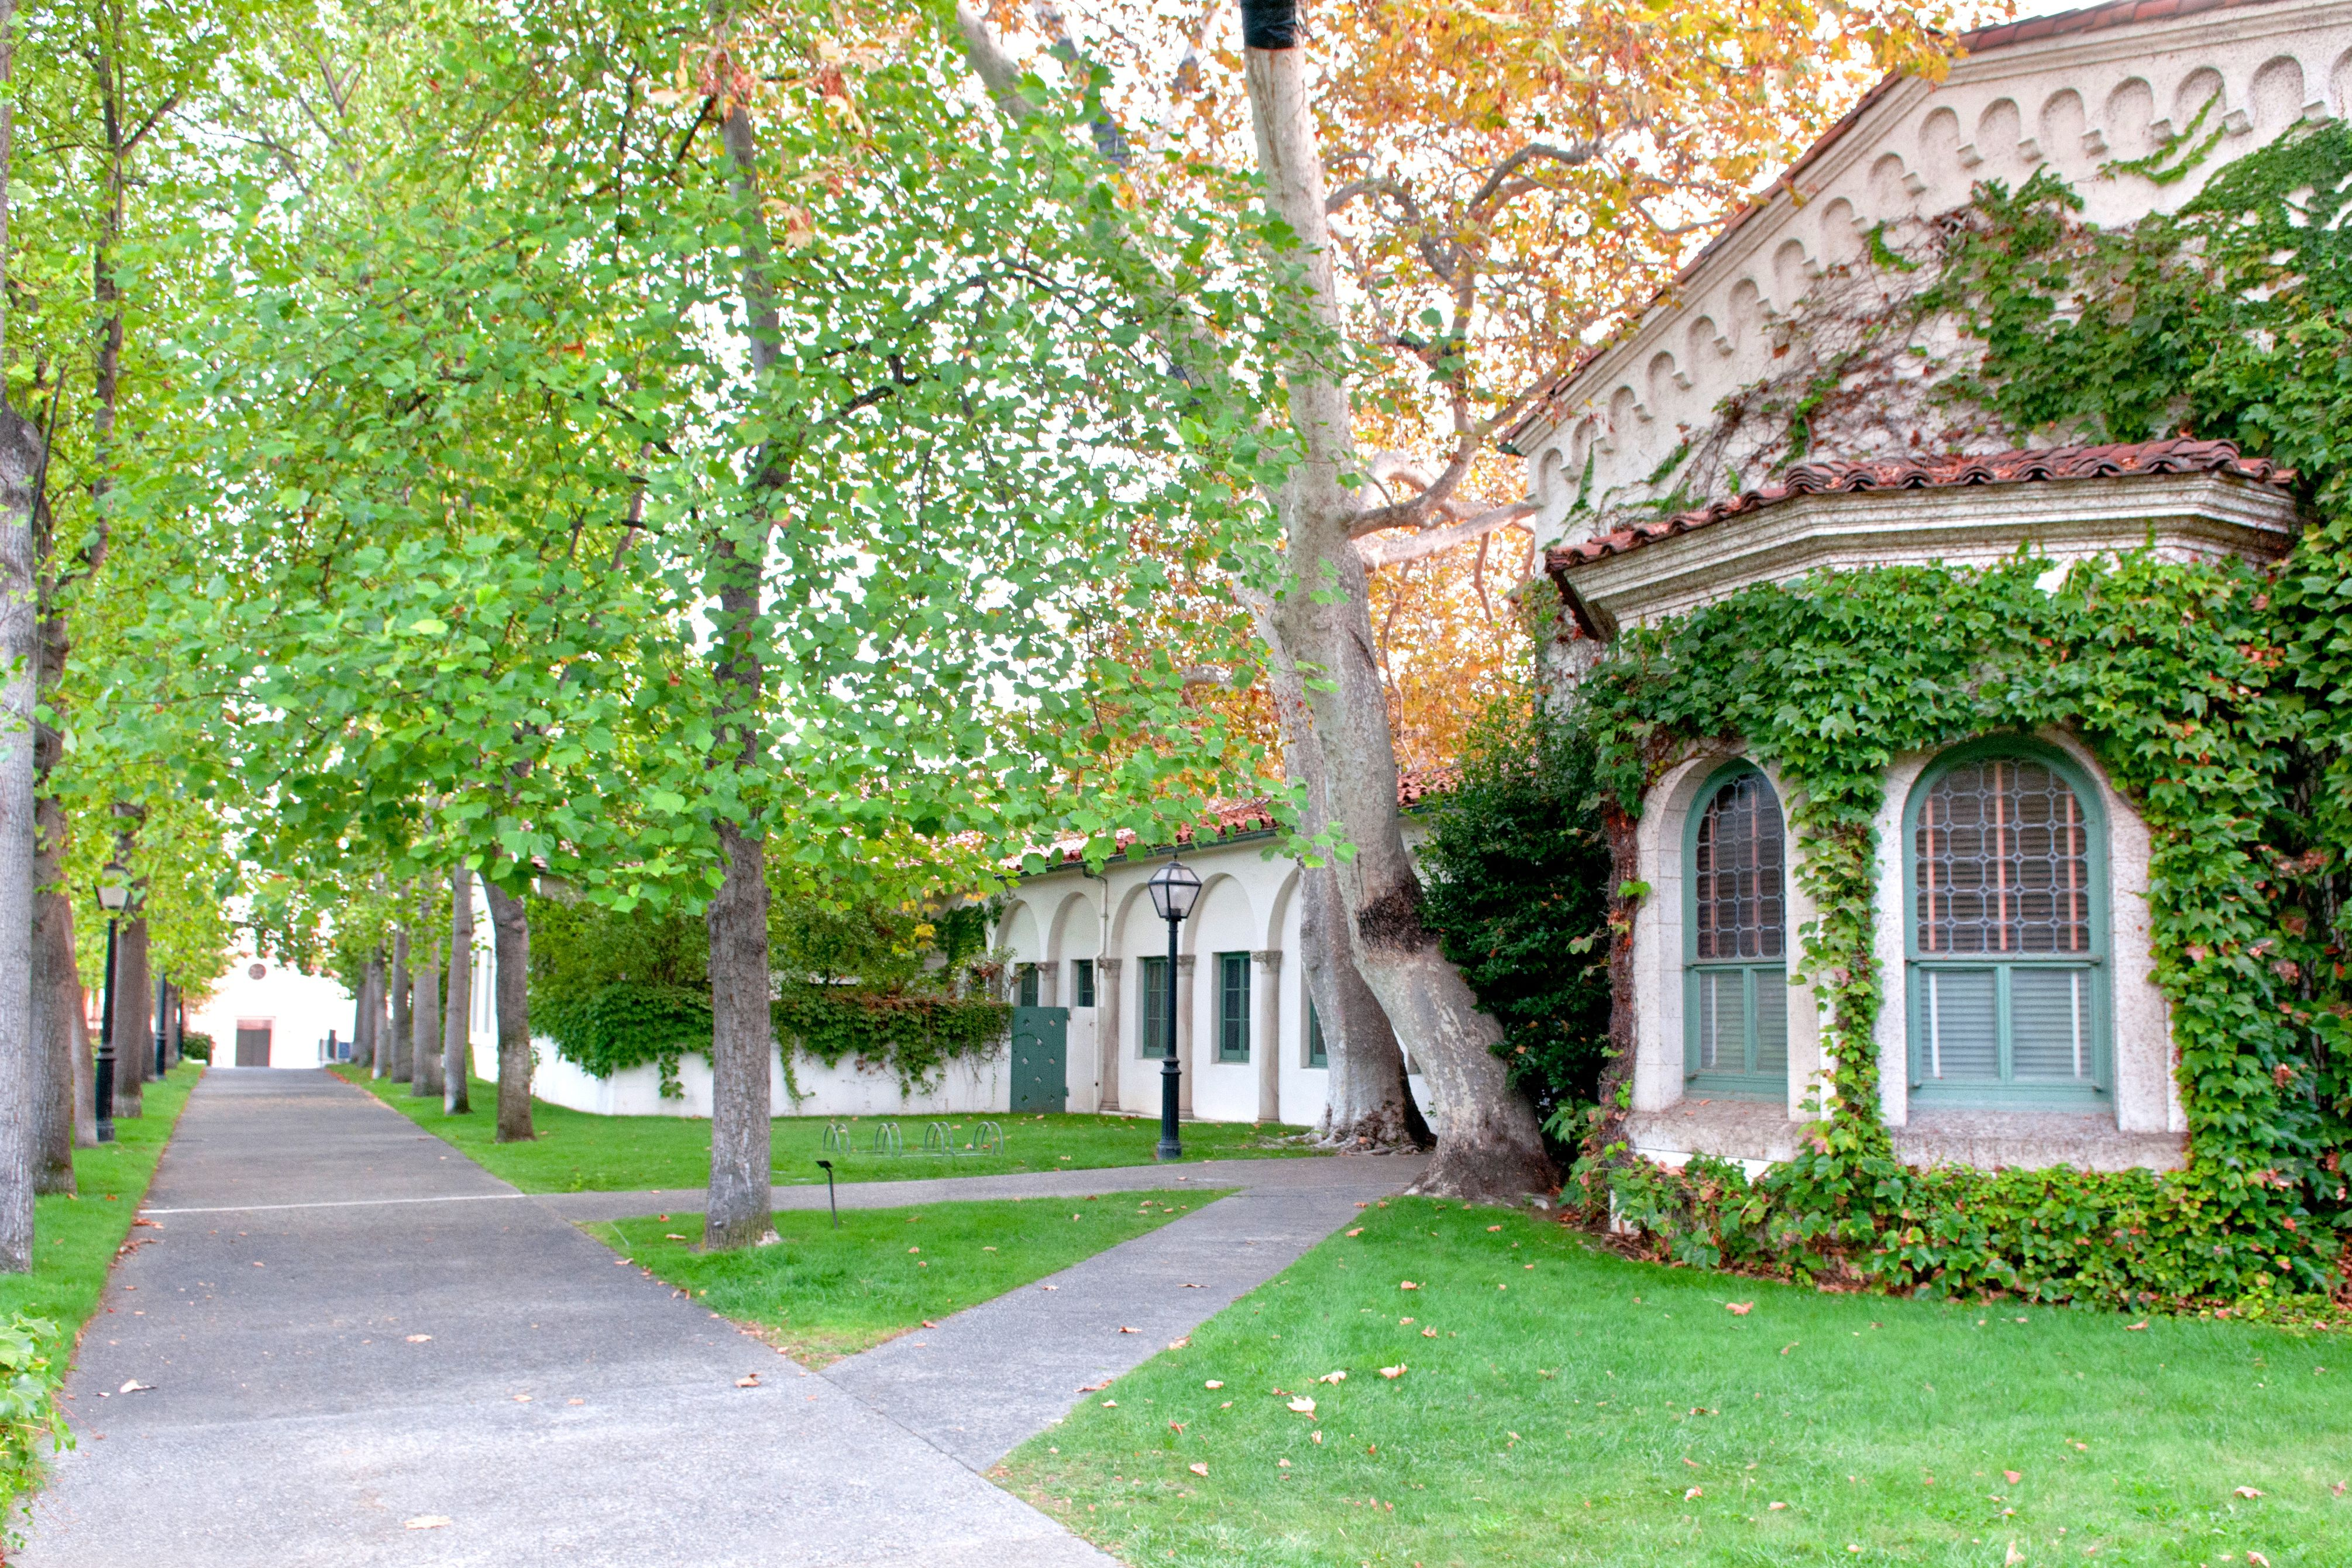 scripps college application essay Find out what you need to know about applying to scripps college, including important dates, application fees, and test requirements.